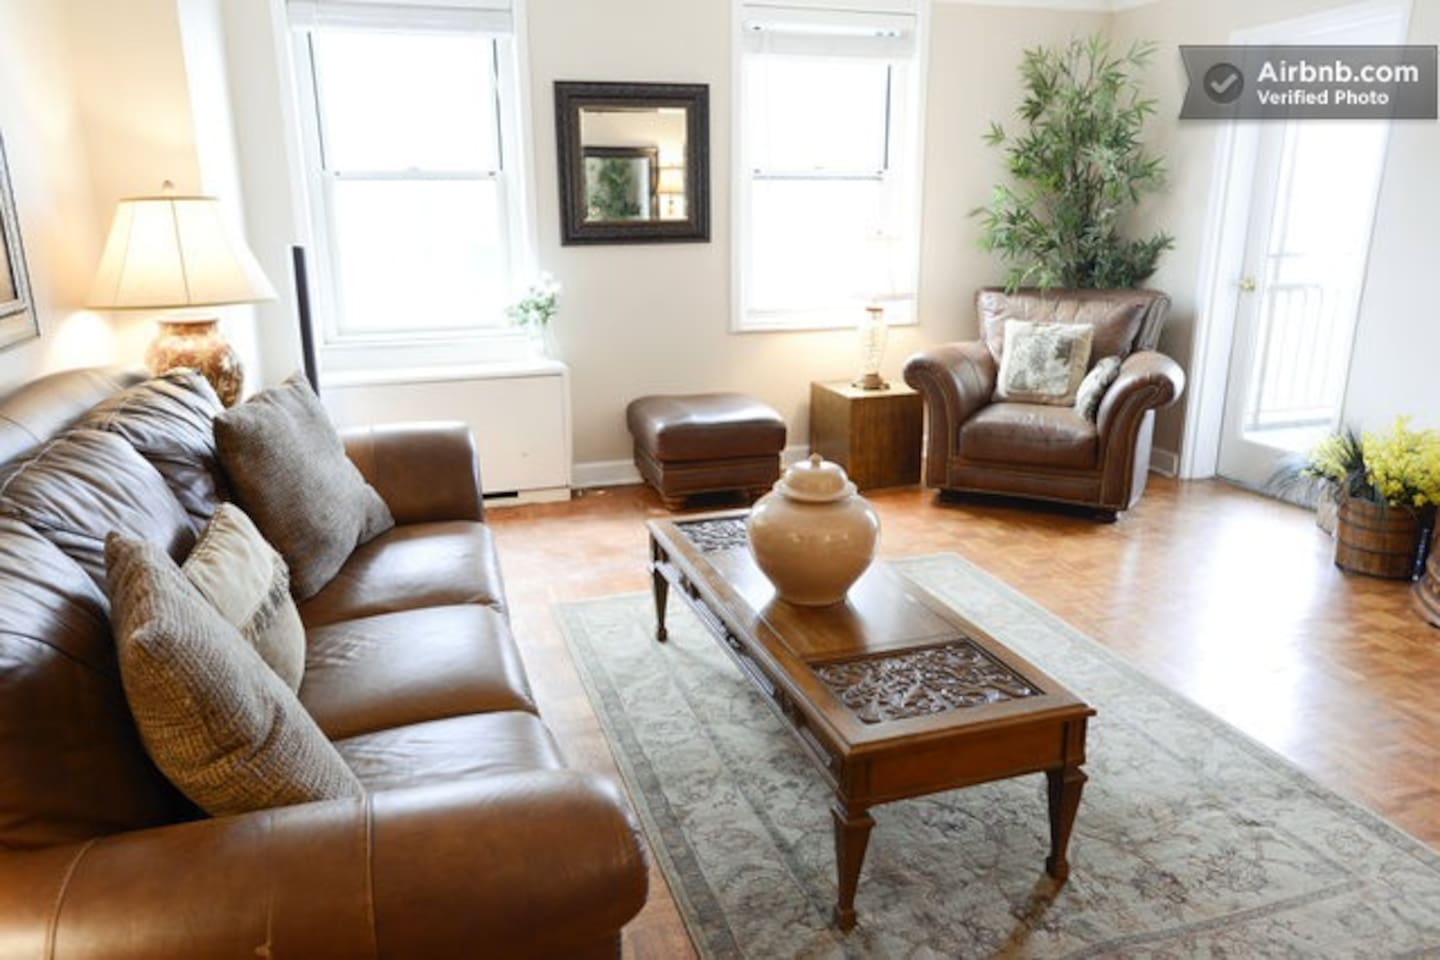 Spacious living room with seating for 5